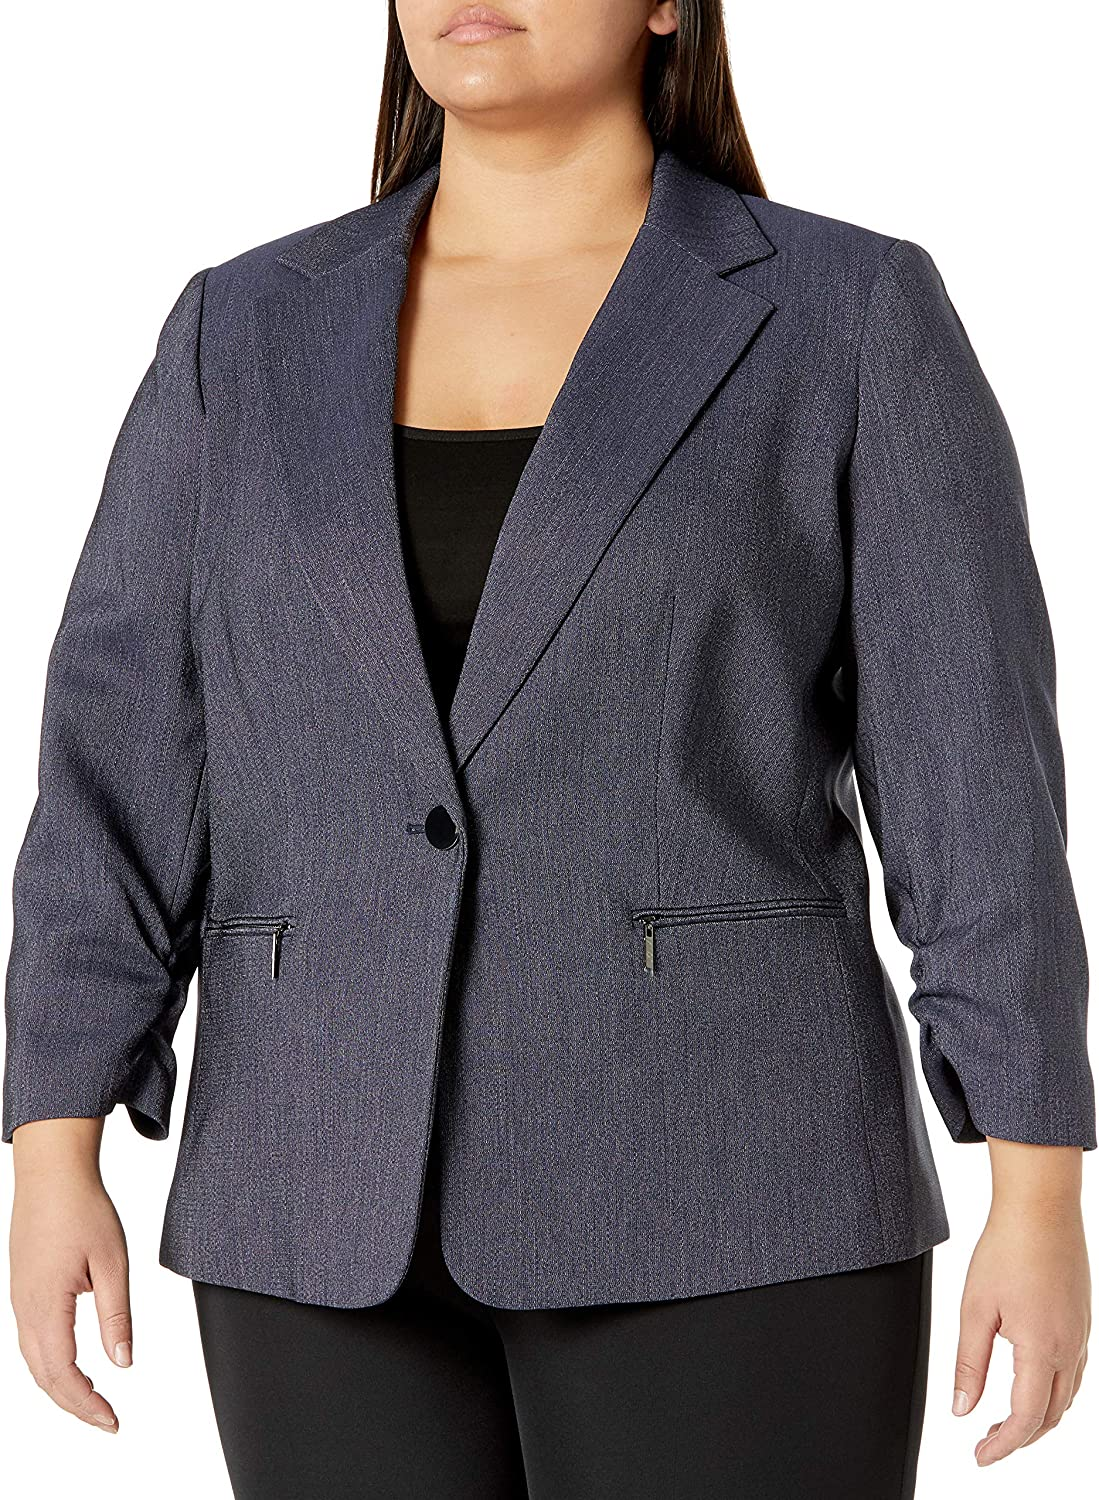 Kasper Women's Plus Size Notch Collar Denim Jacket with Zip Pocket and Ruched Sleeves